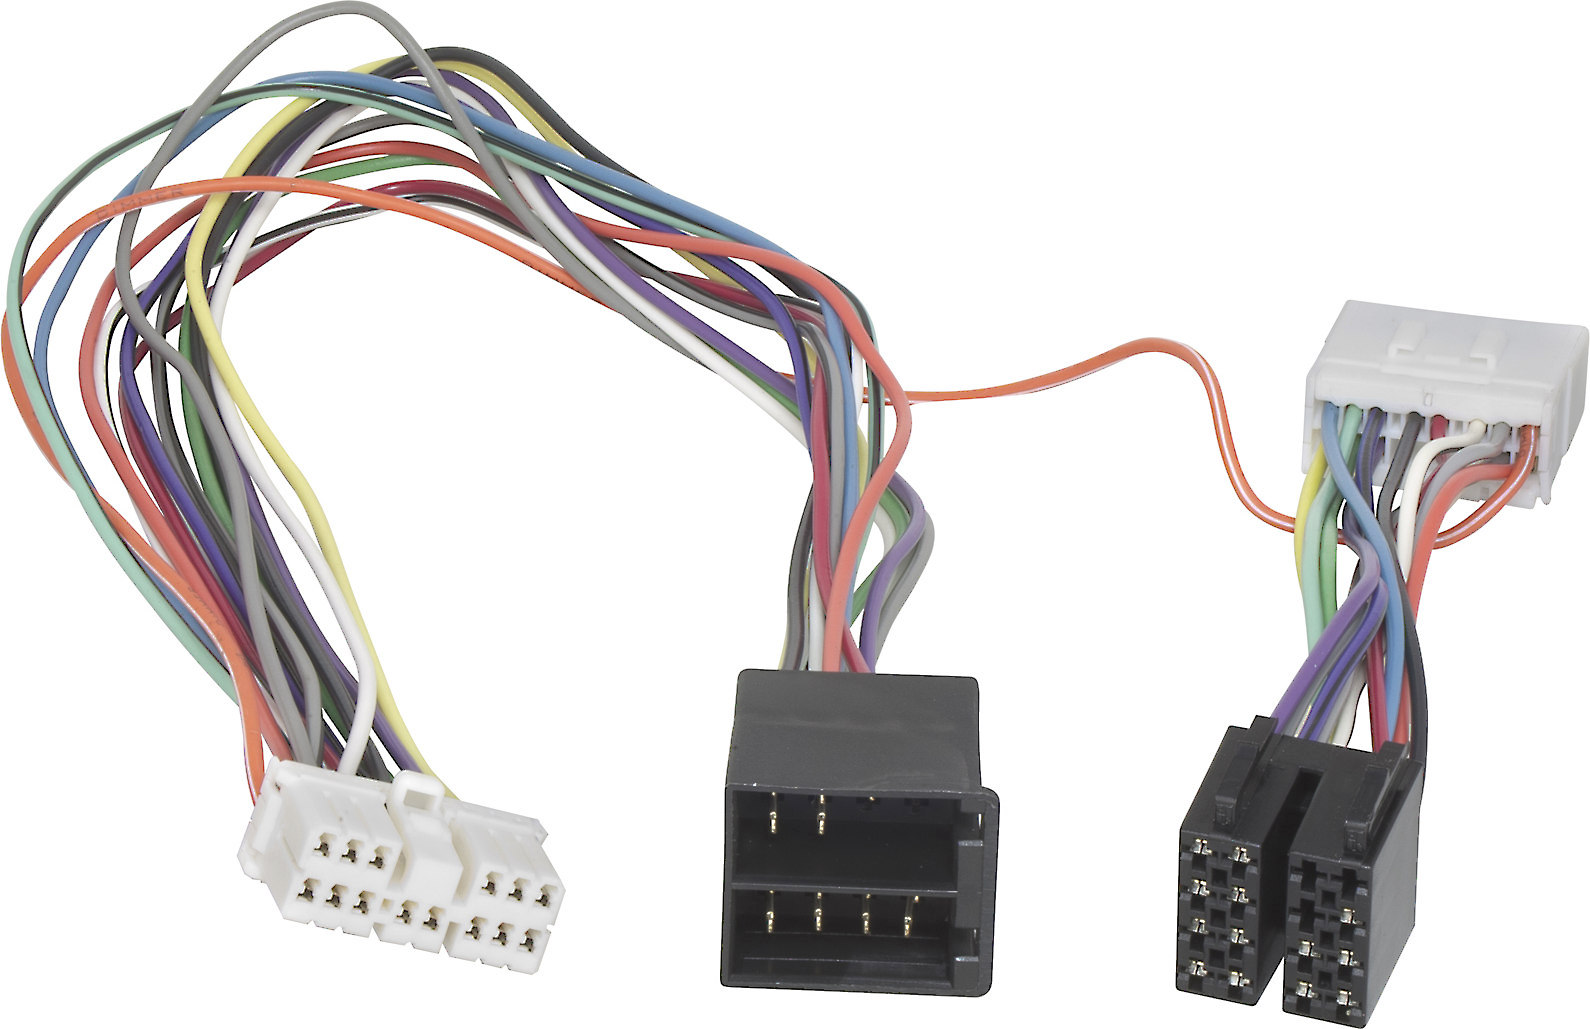 hight resolution of subaru bluetooth wiring harness connects parrot bluetooth cell phone kits to the factory stereo in select 1993 up subaru and 2005 06 saab vehicles at